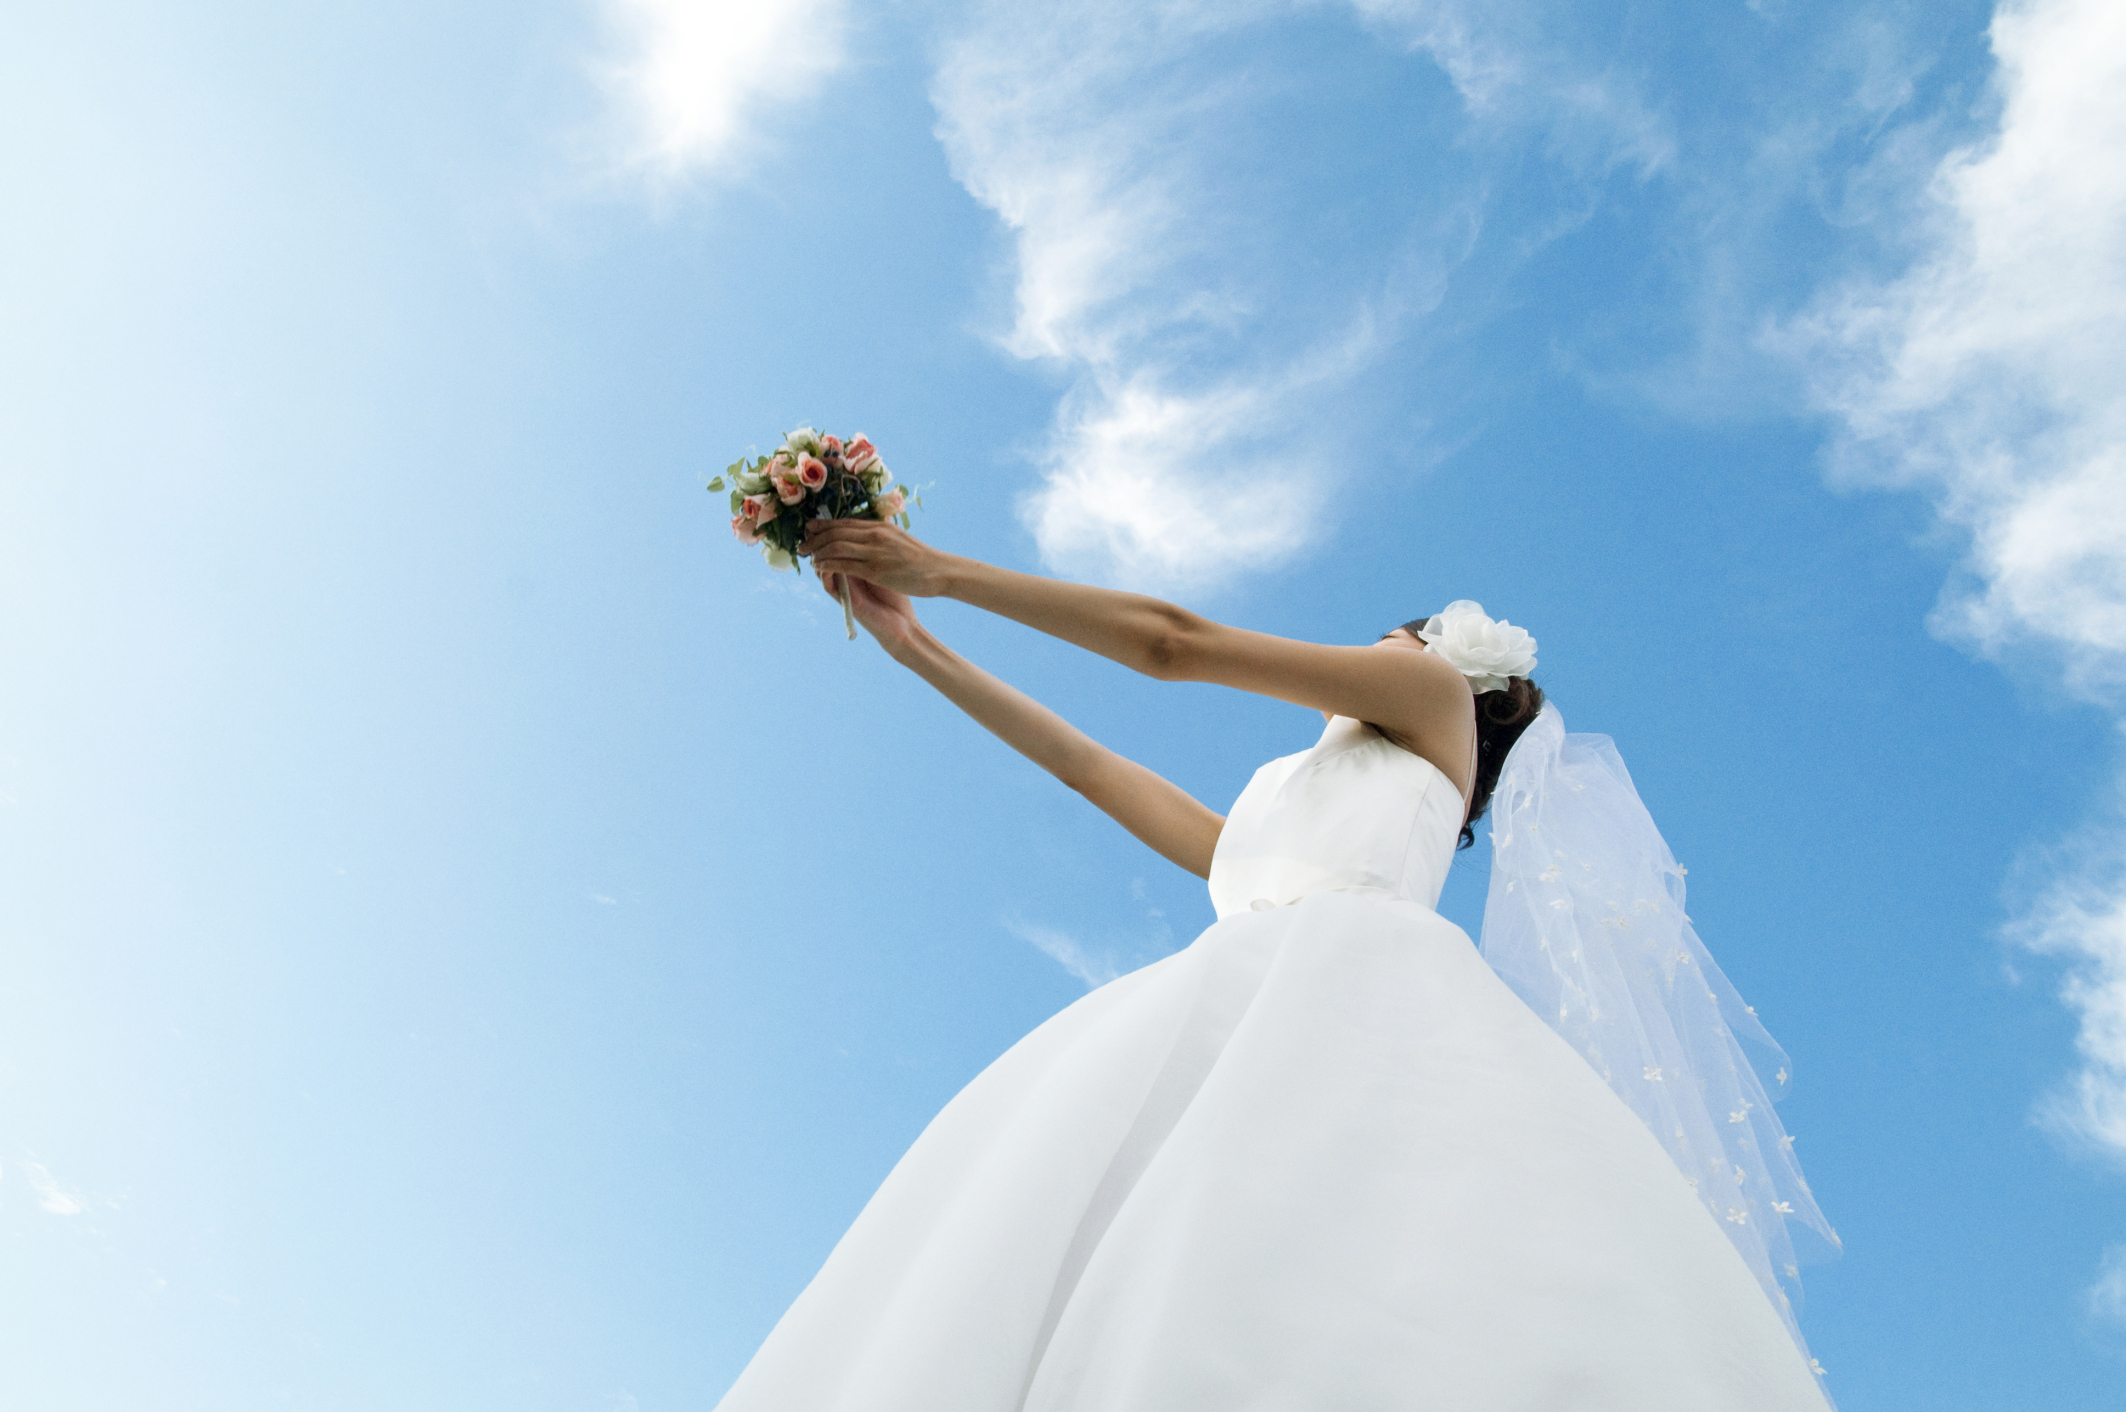 Bridal Bouquet Throwing : Wedding bouquet throwing tips articles easy weddings